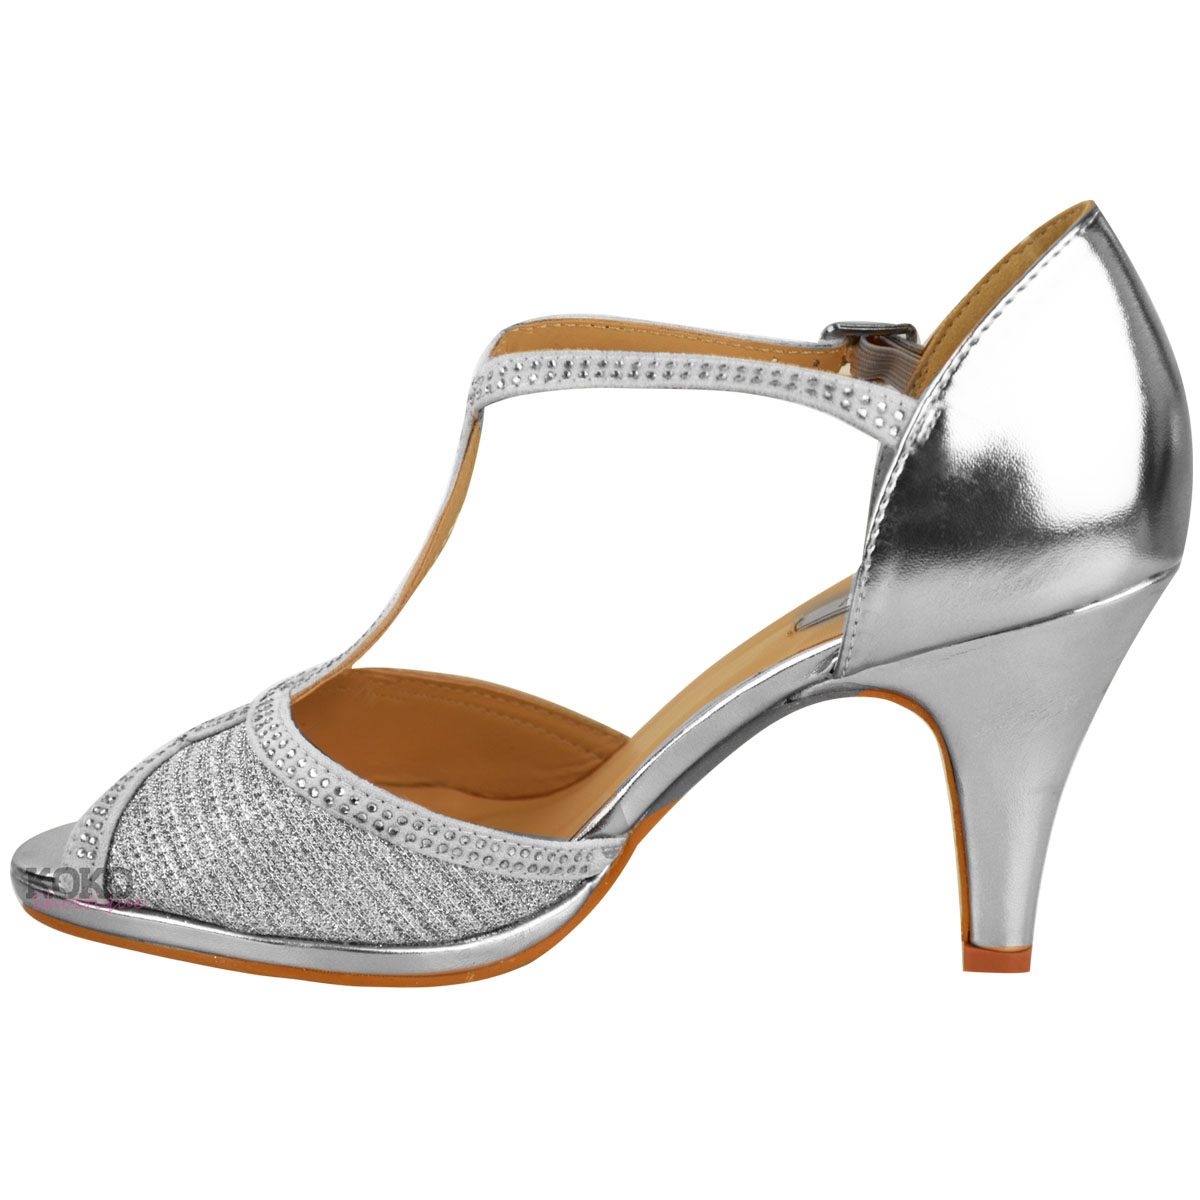 Womens-Ladies-Wedding-Bridal-Shoes-Prom-High-Heel-Diamante-Party-Sandals-Size